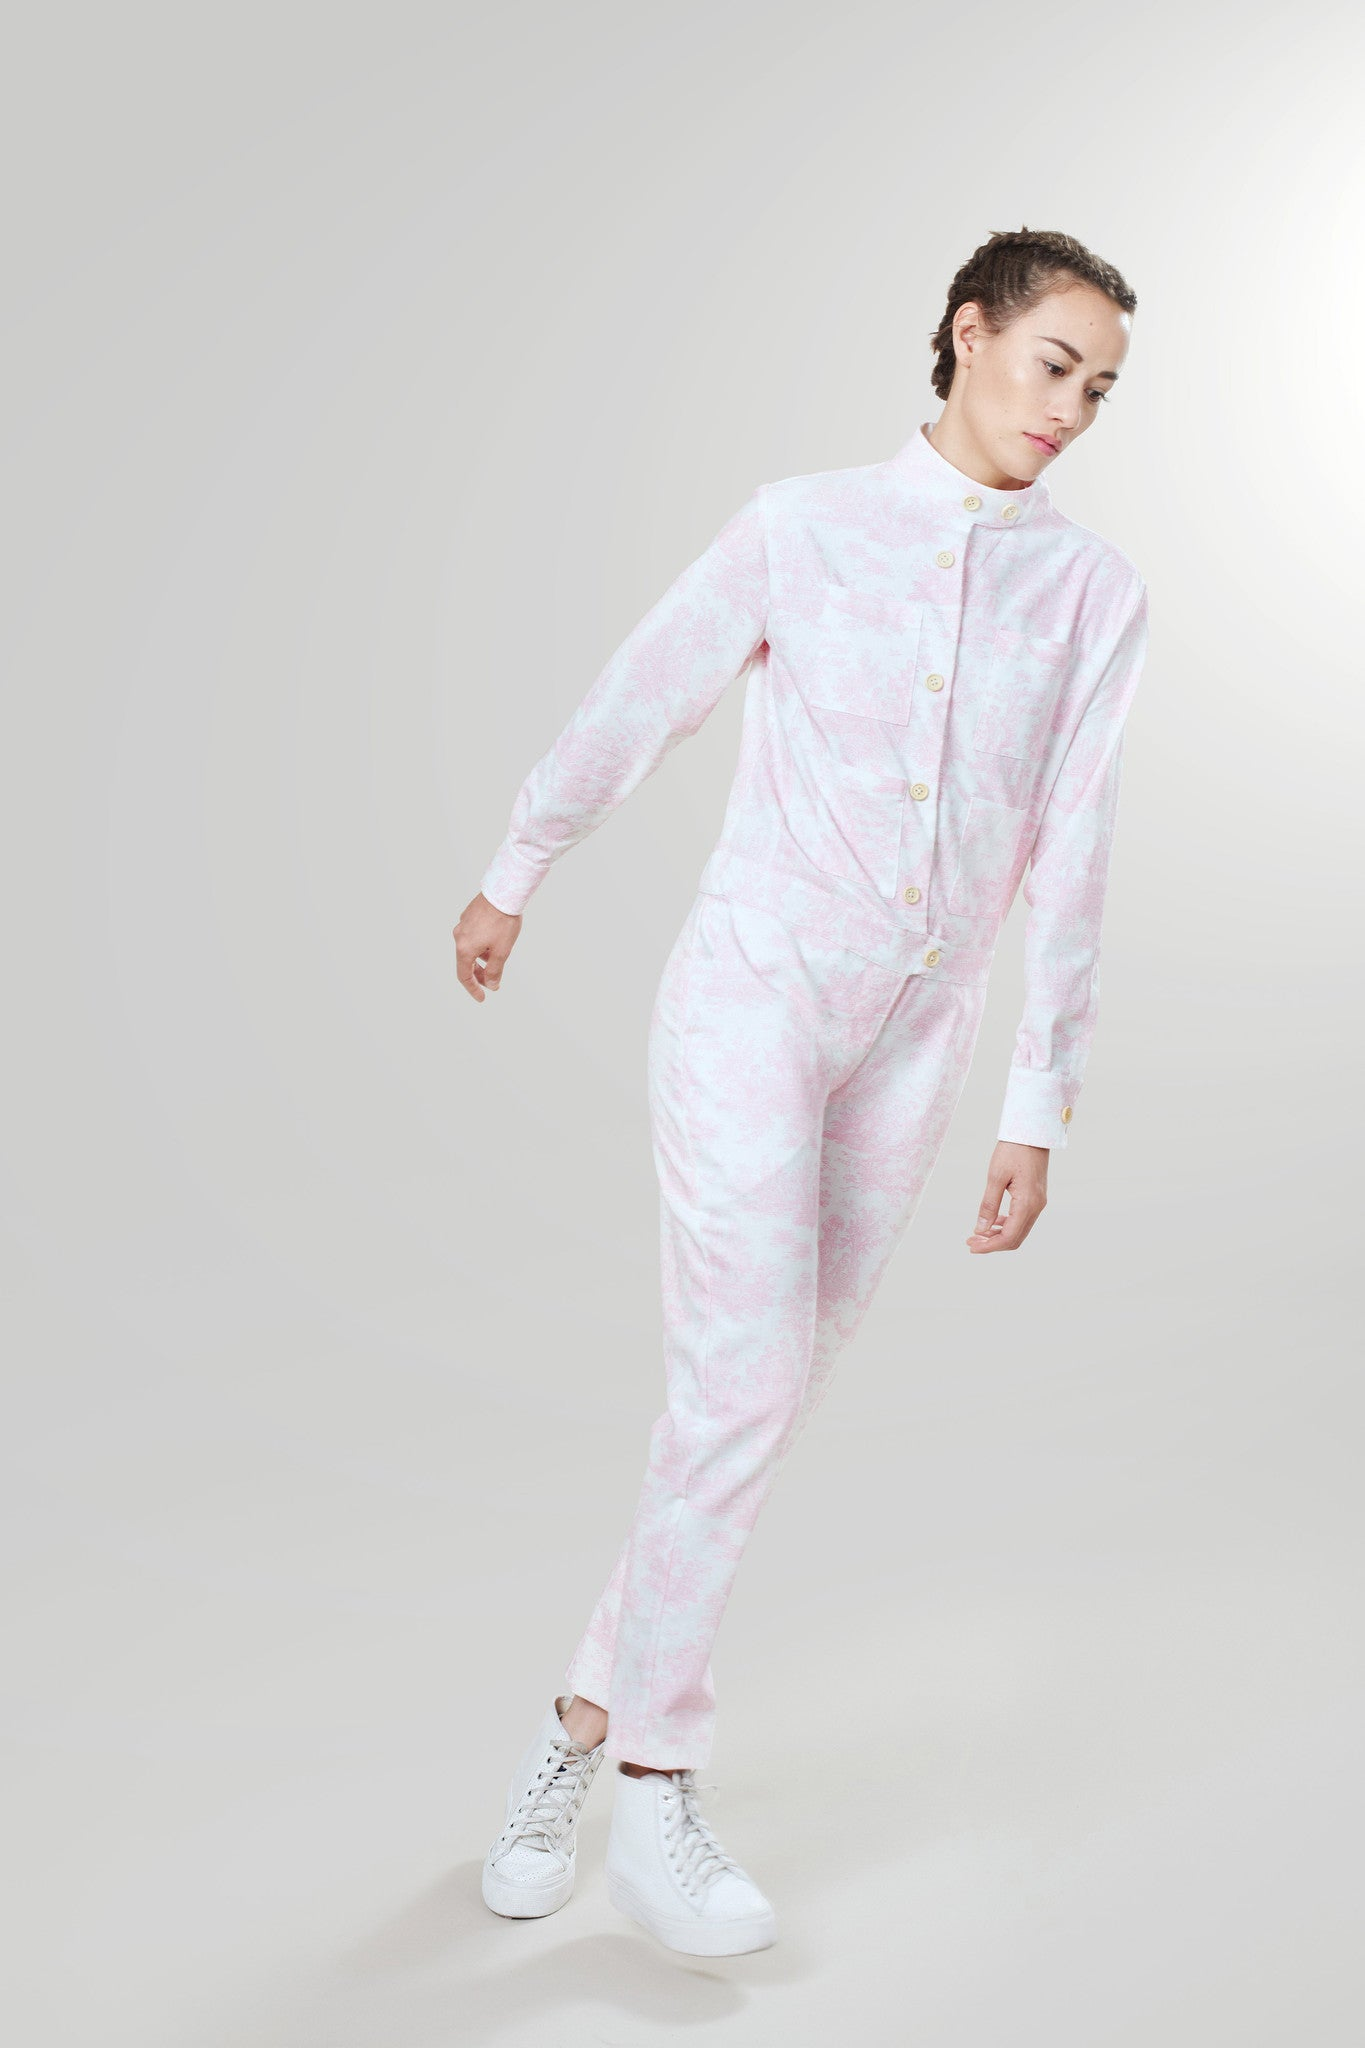 Churchill Siren Suit in Misty Pink & White Toile